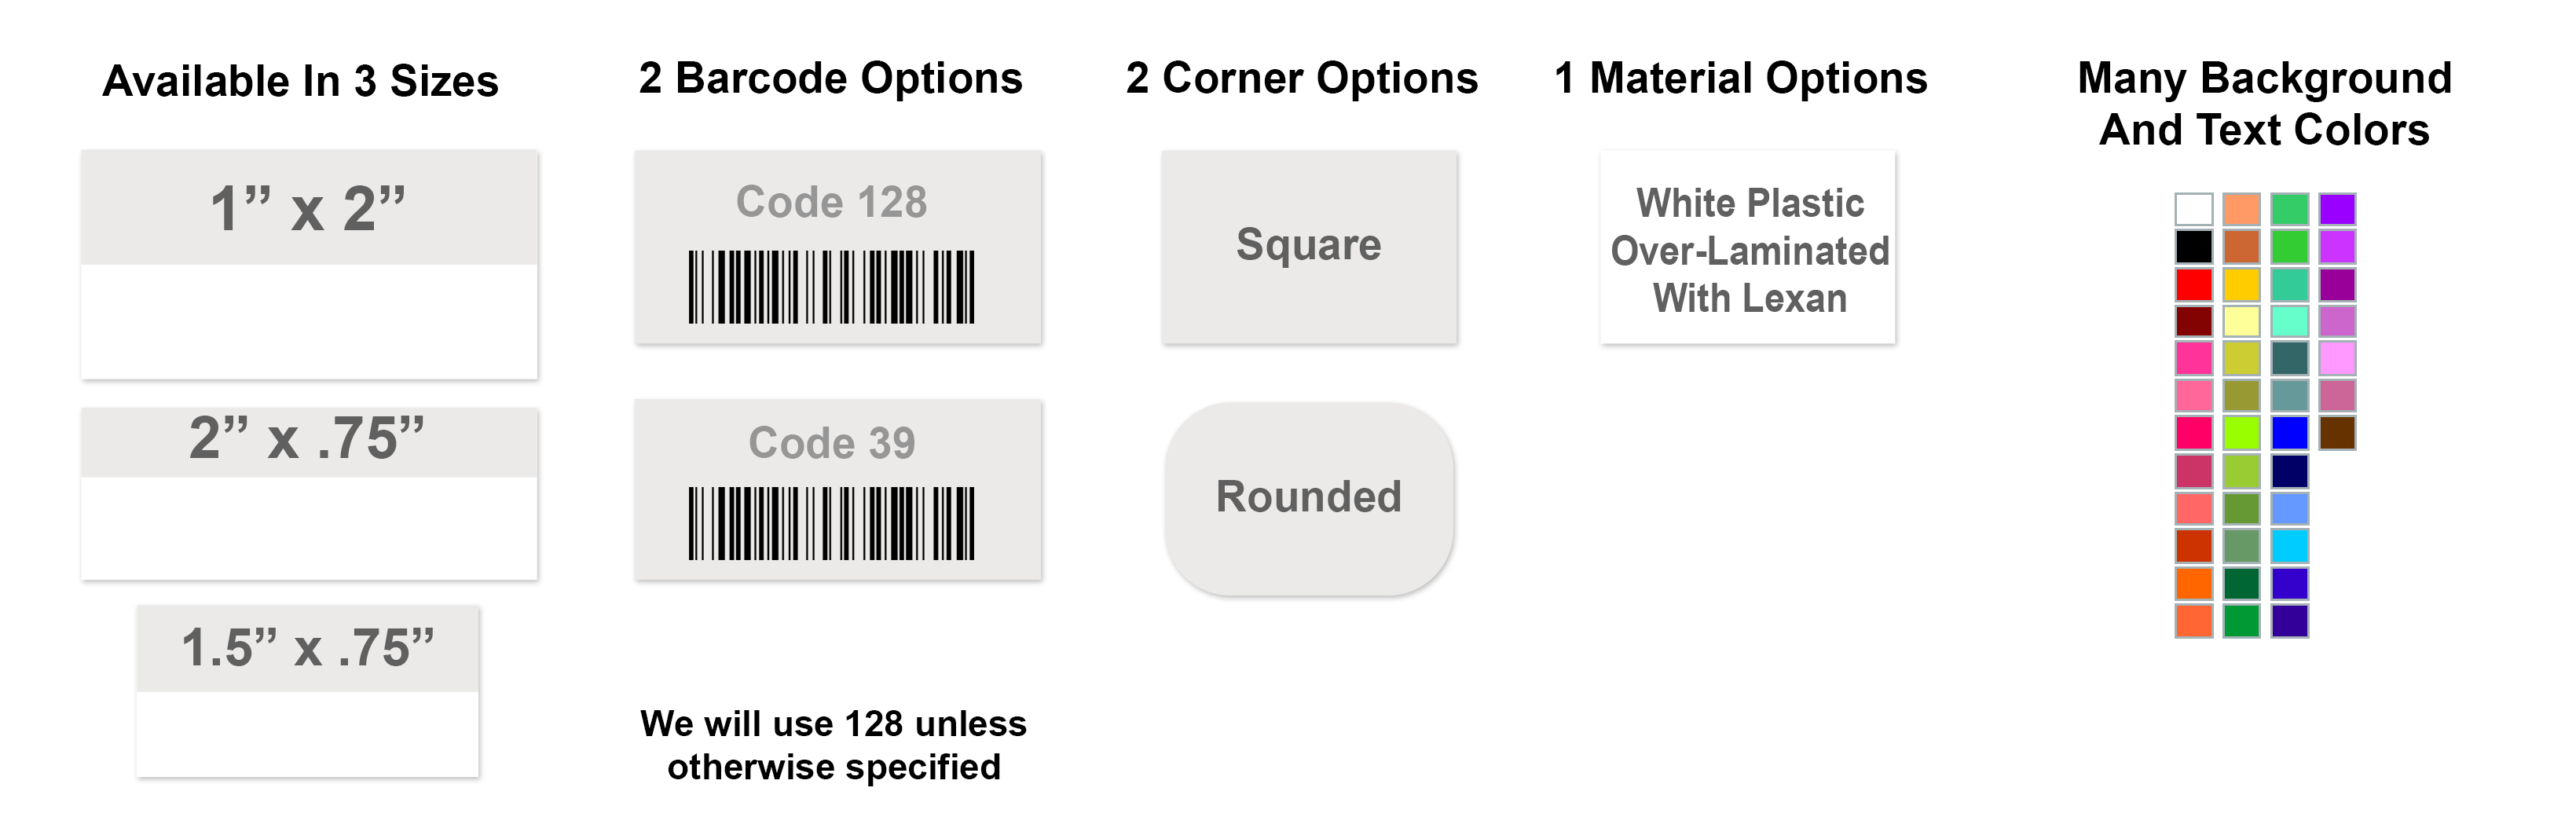 Premium Asset Tag with Barcode Options